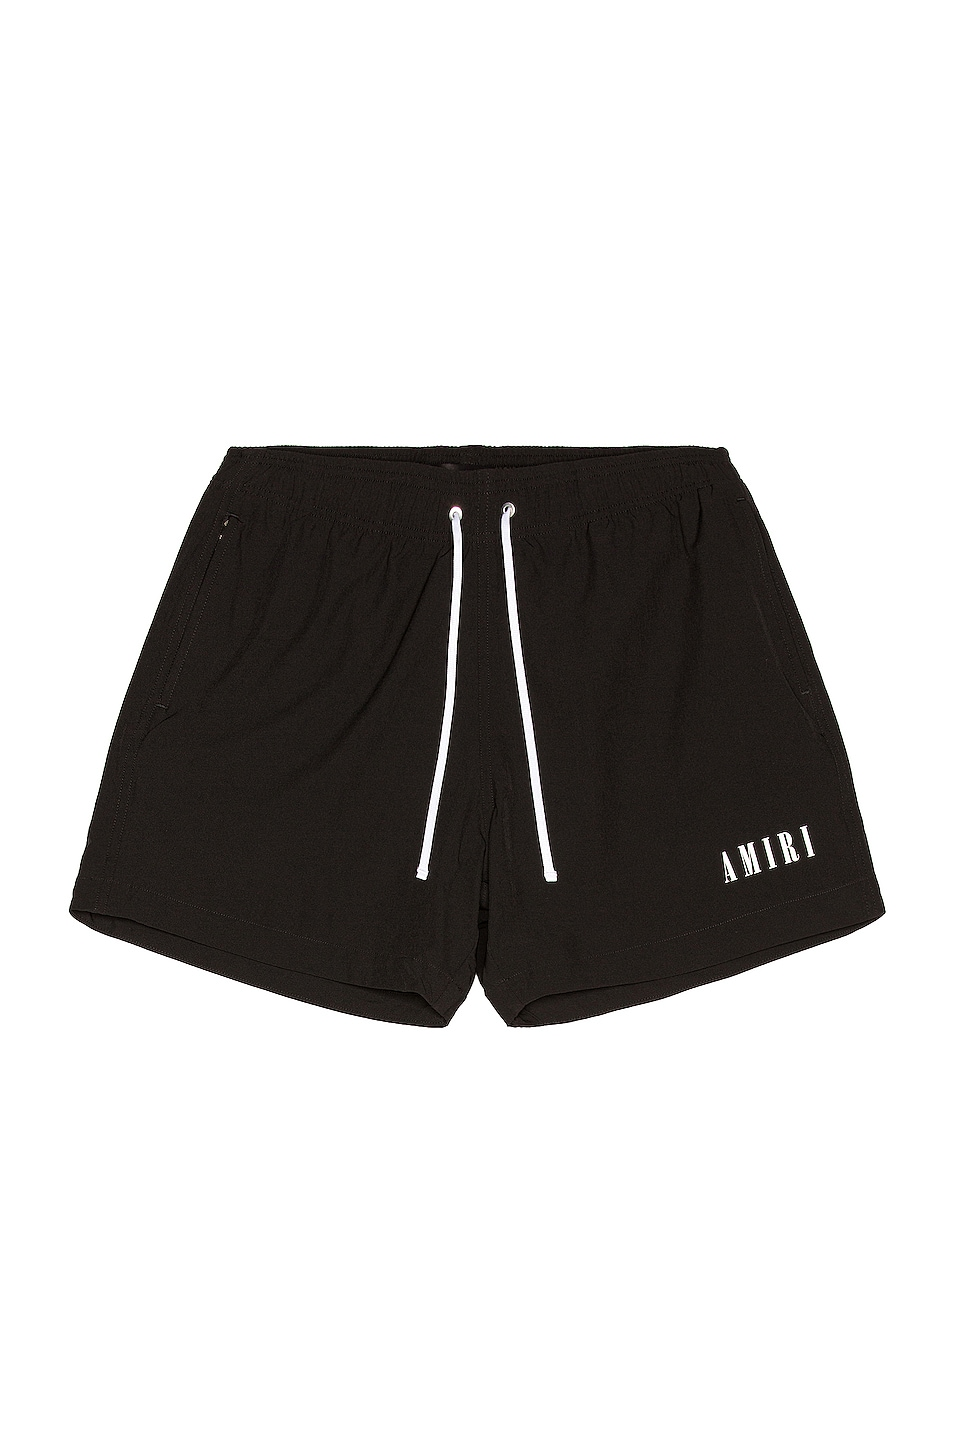 Image 1 of Amiri Logo Swim Trunk in Black